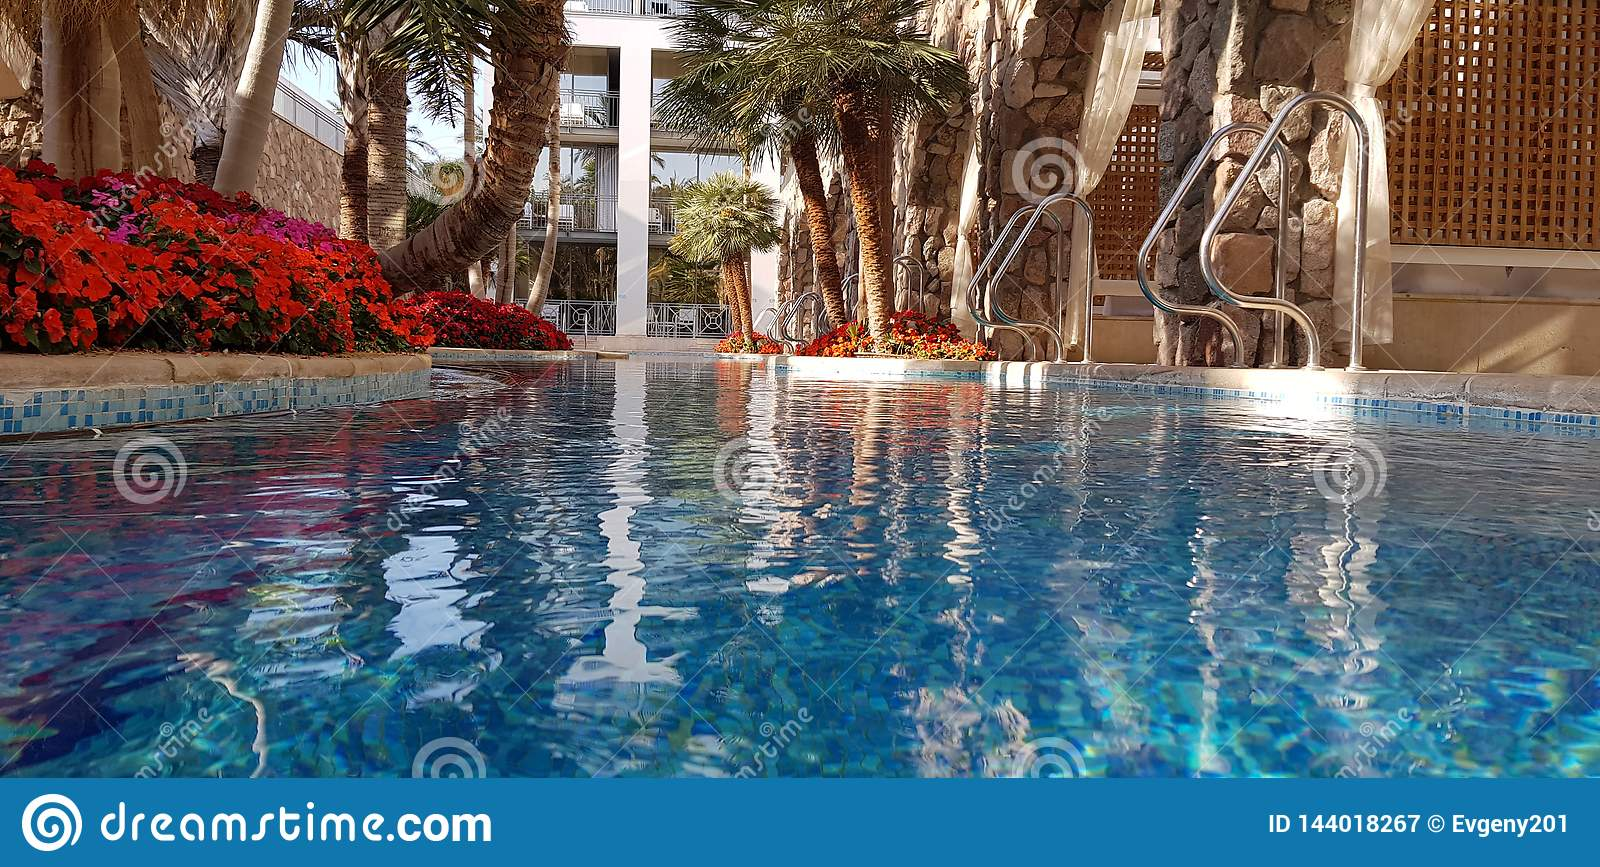 Blue Swimming Pool View From Water Level Stock Image - Image ...